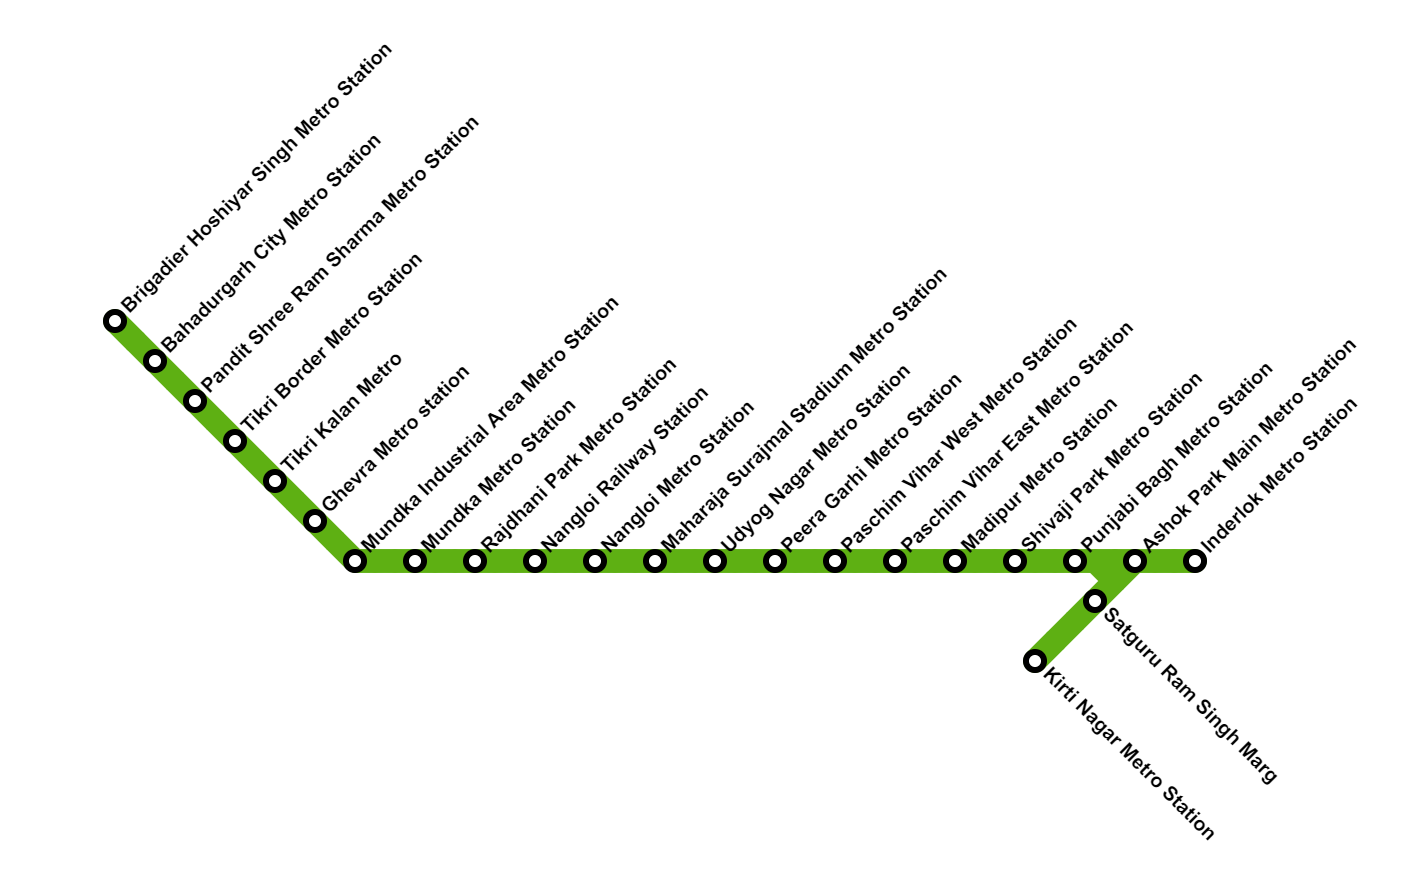 Green Line Delhi Metro stations list - Routes Maps